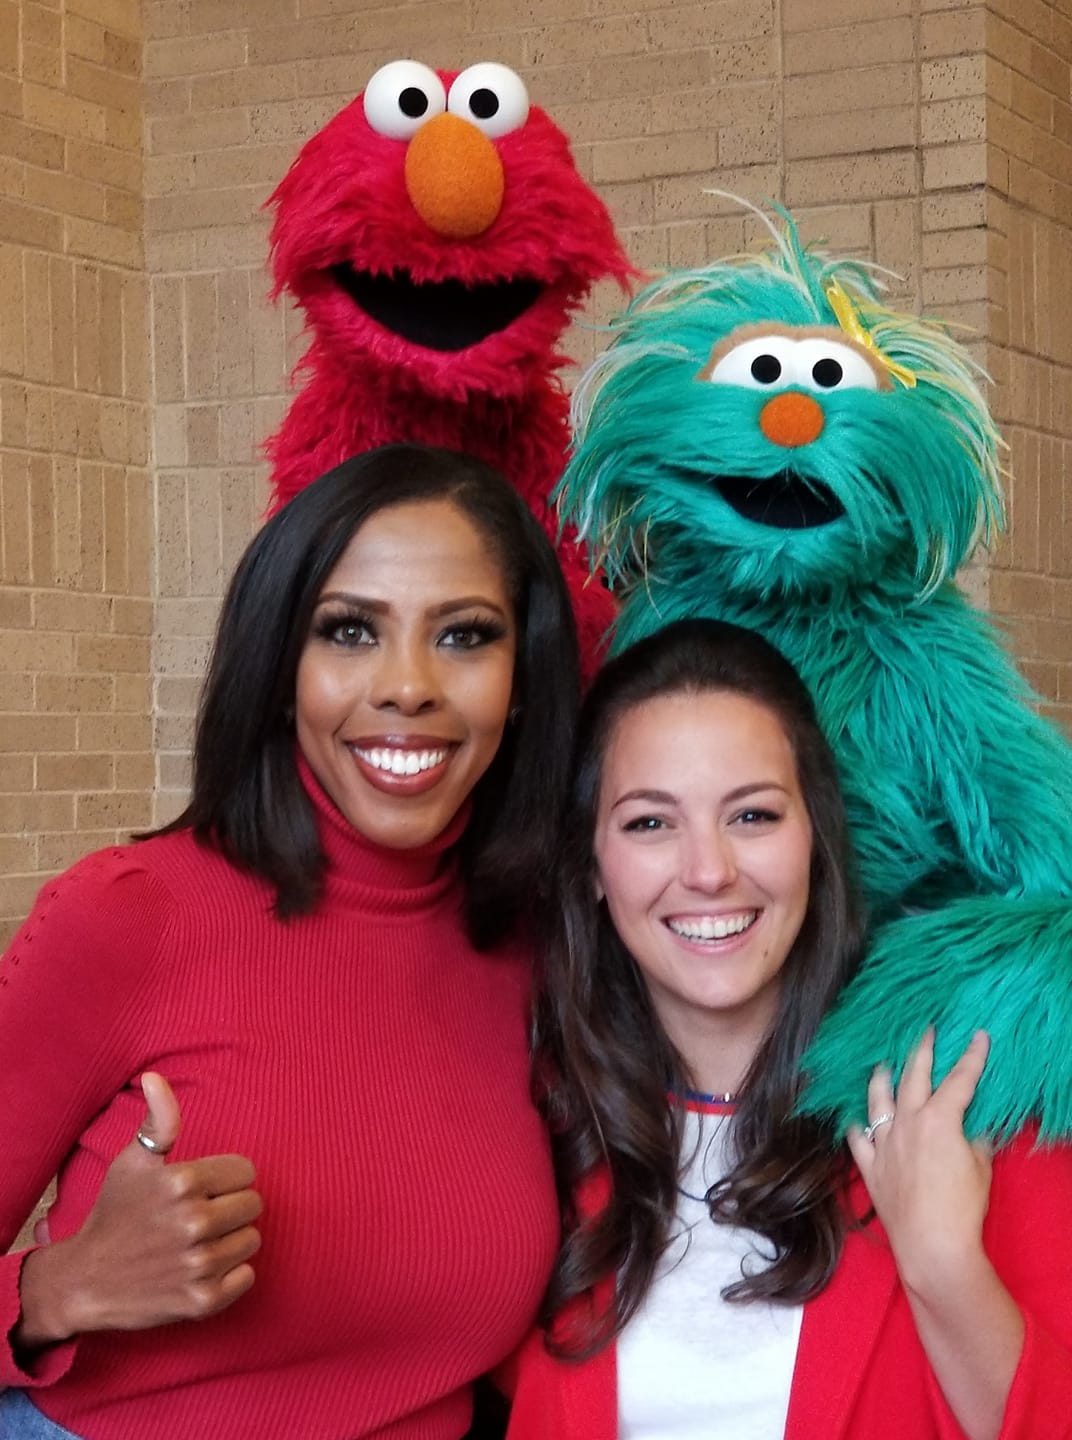 FOX4's Dhominique Ricks and Sesame Street's Elmo, Rosita and Nina pose together at Rock It!